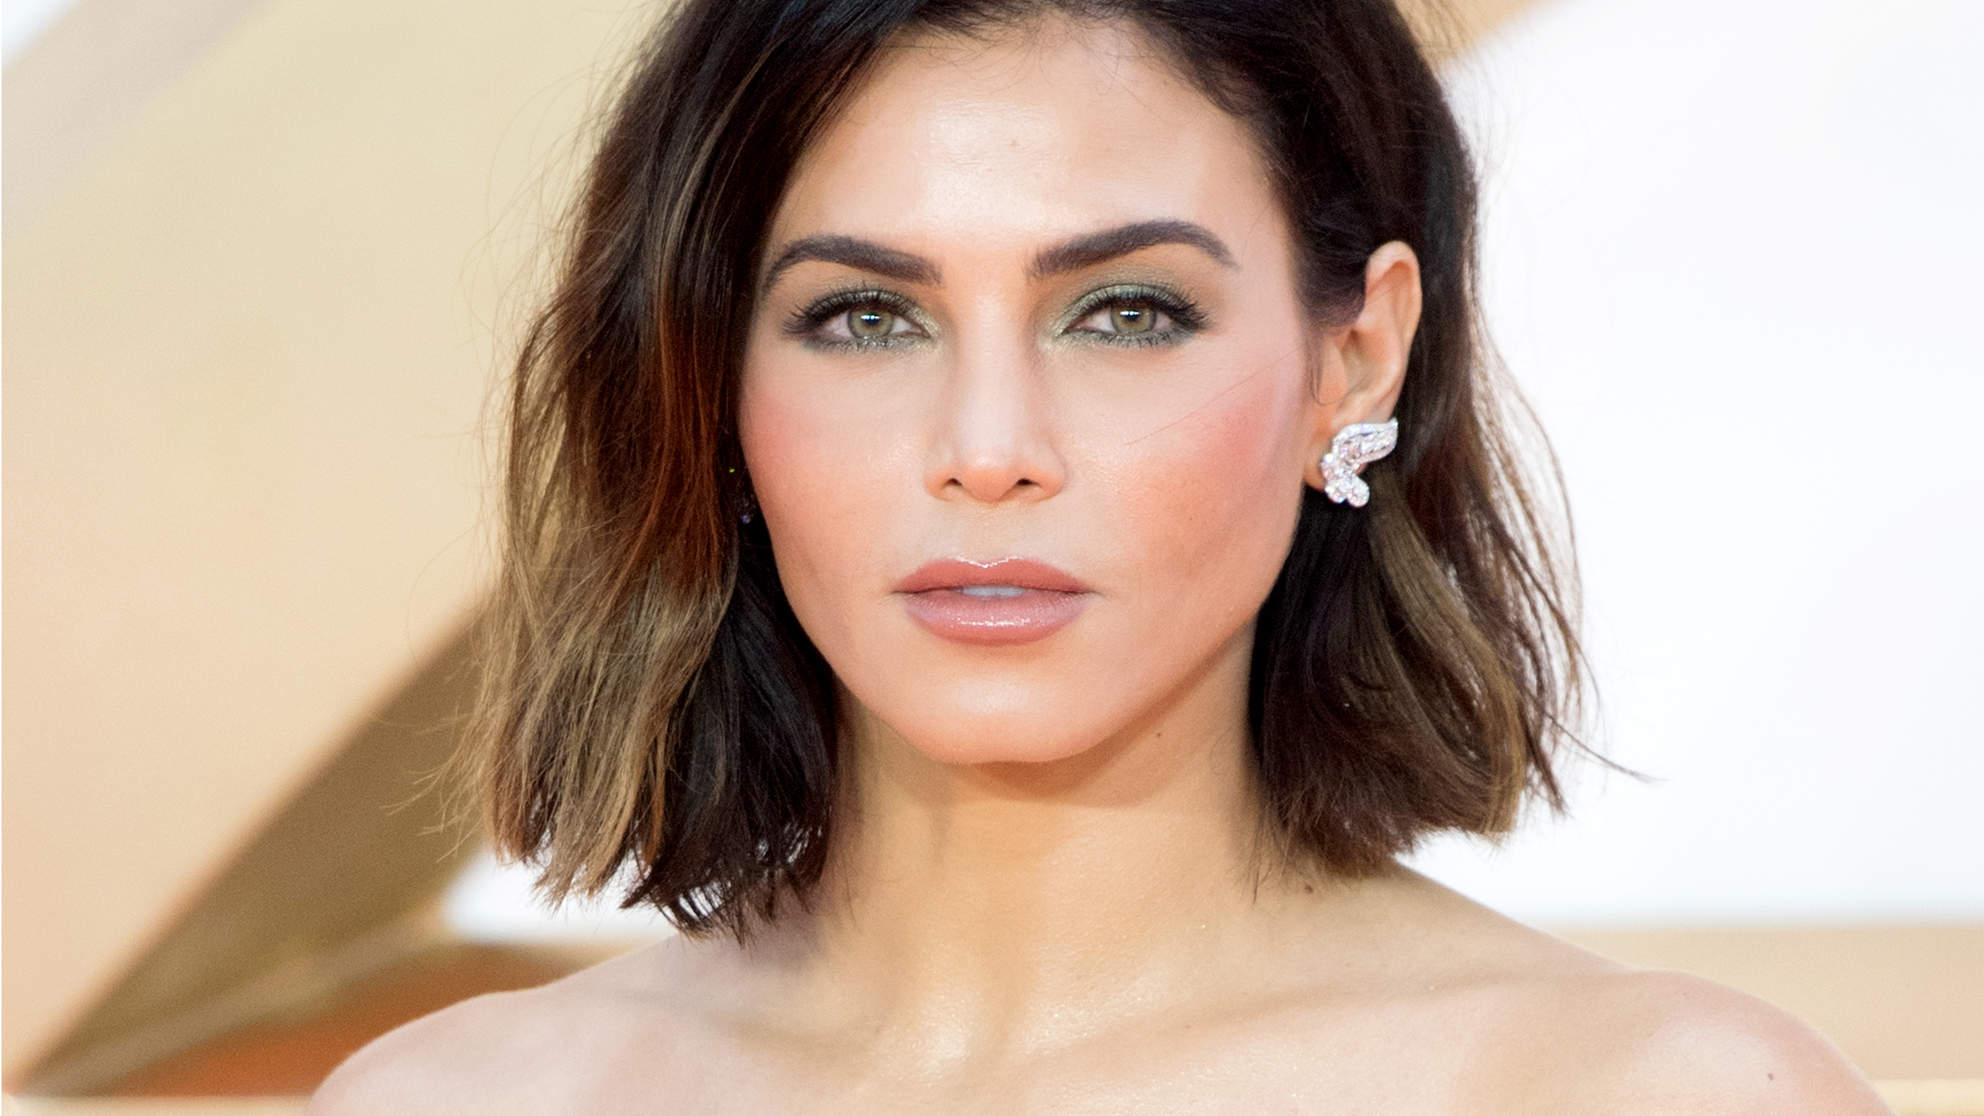 Jenna Dewan Tatum Just Got Real About Struggling with Skin Issues